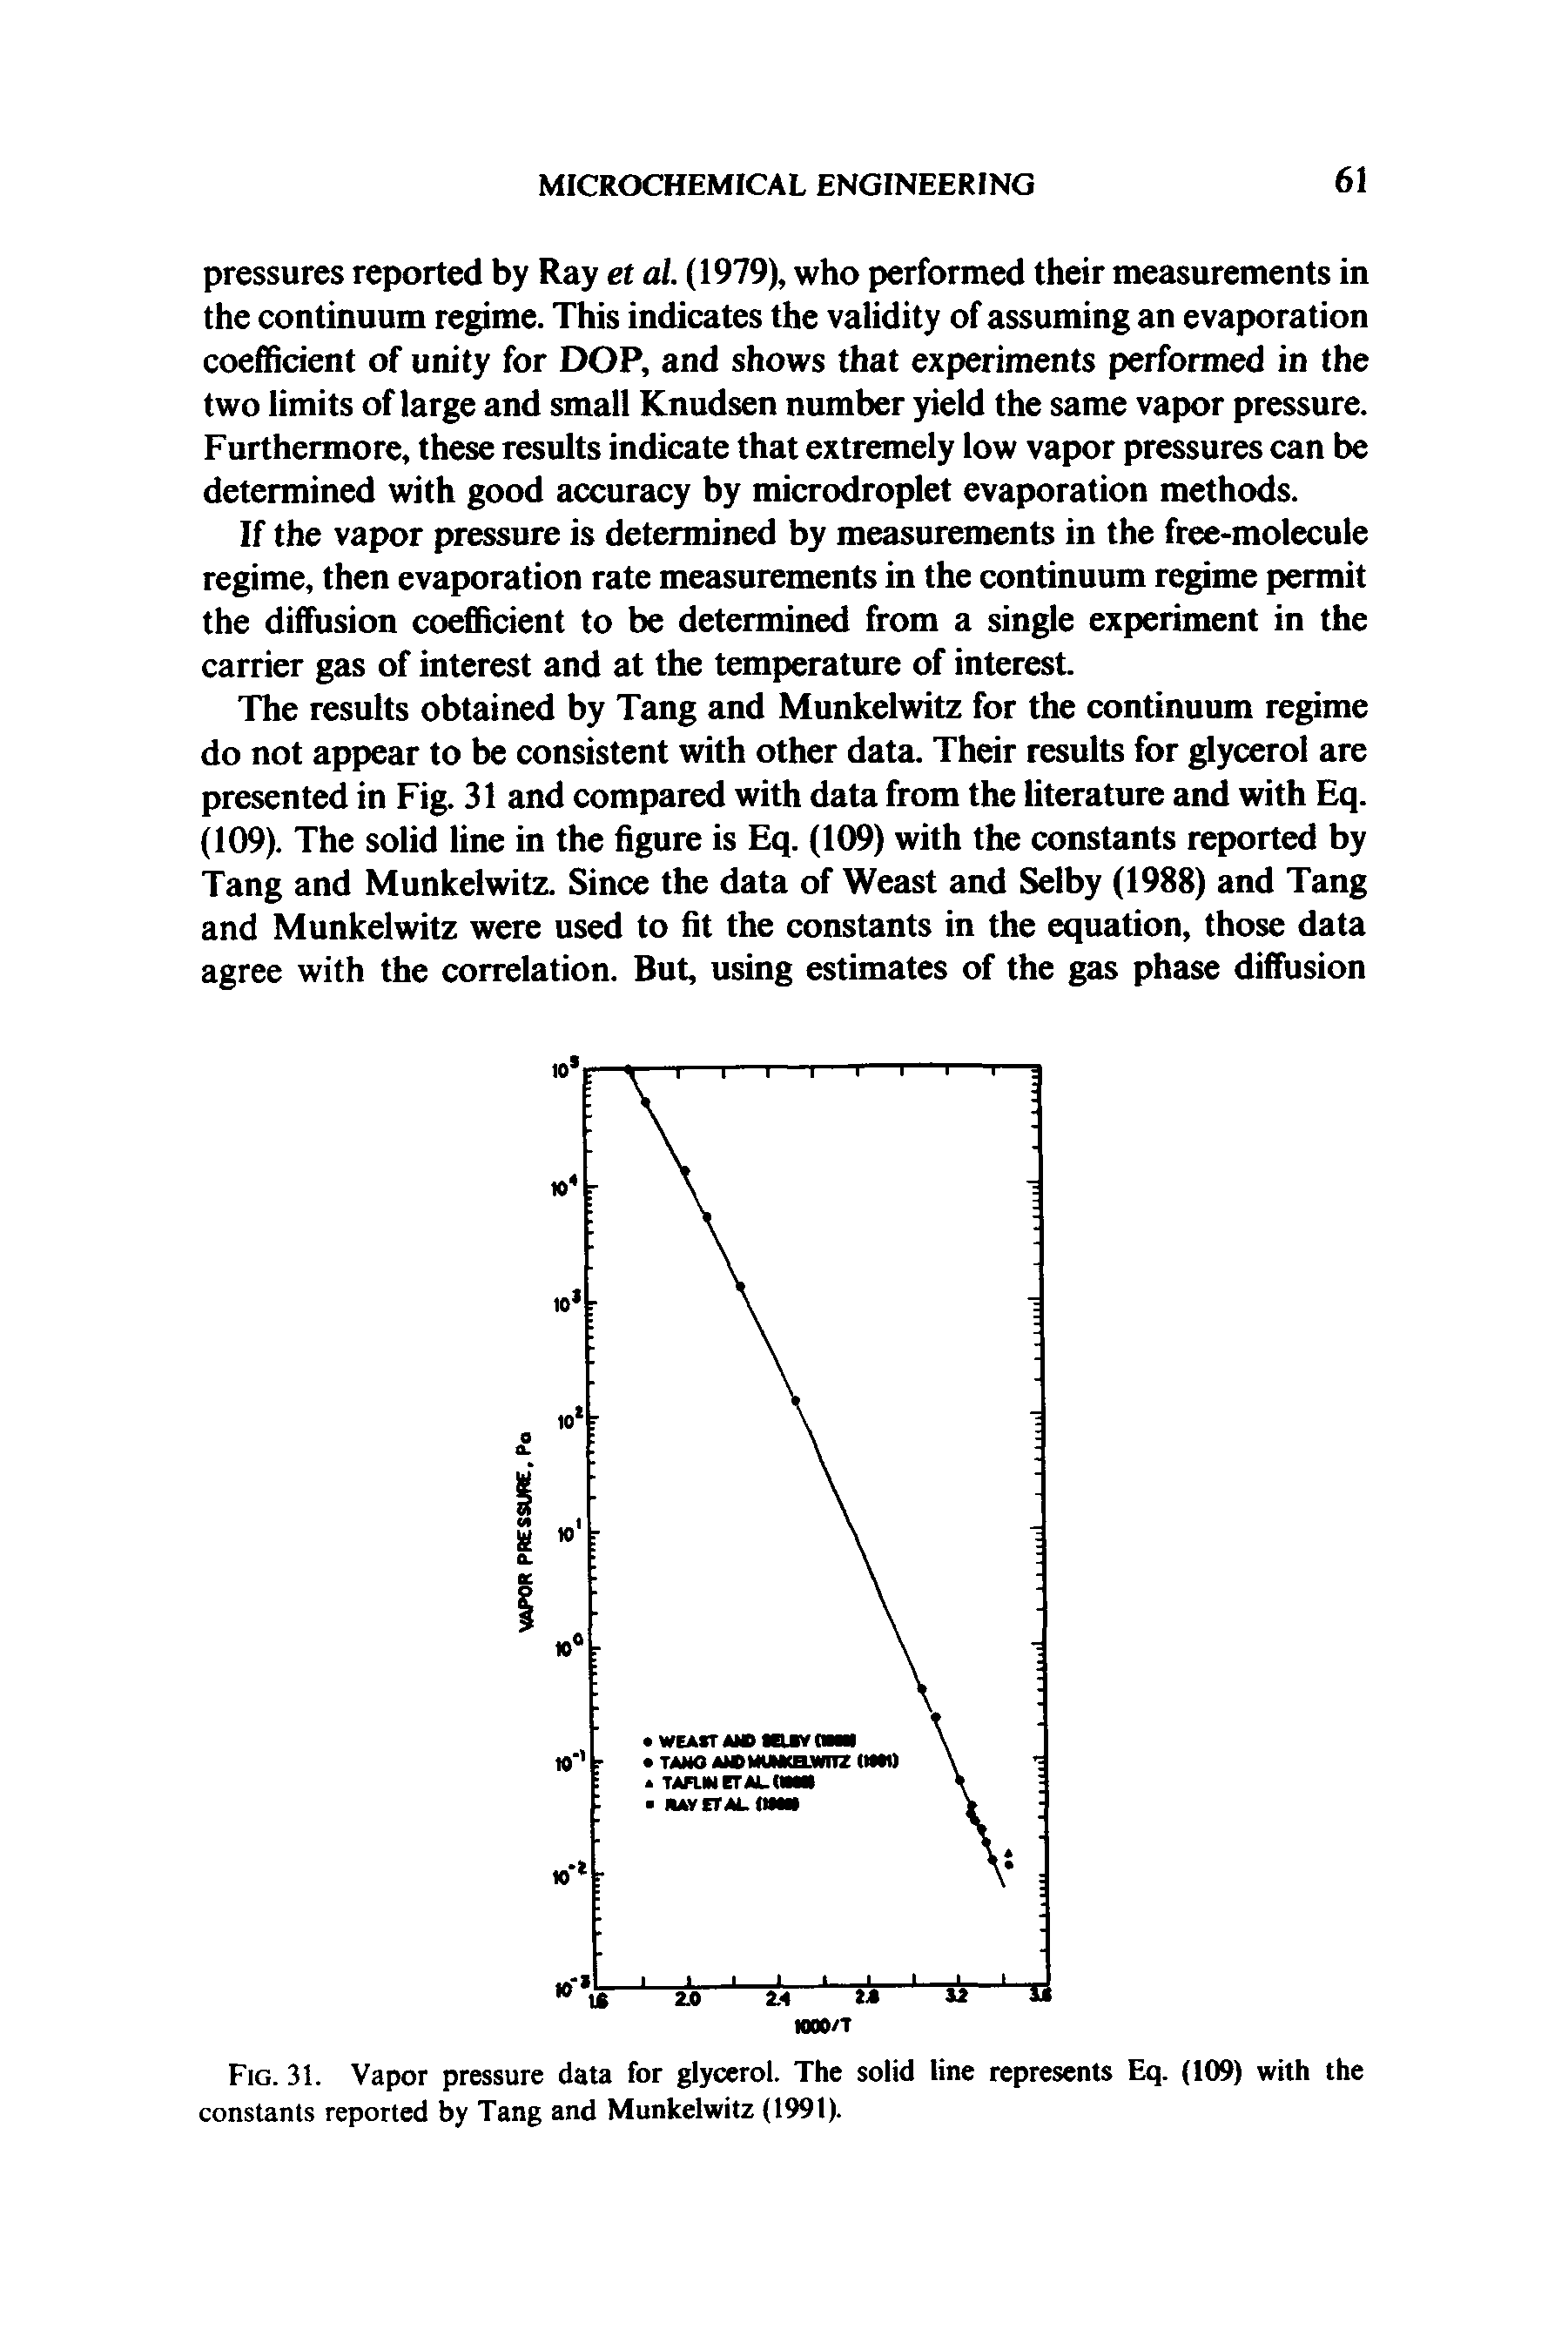 Fig. 31. Vapor pressure data for glycerol. The solid line represents Eq. (109) with the constants reported by Tang and Munkelwitz (1991).